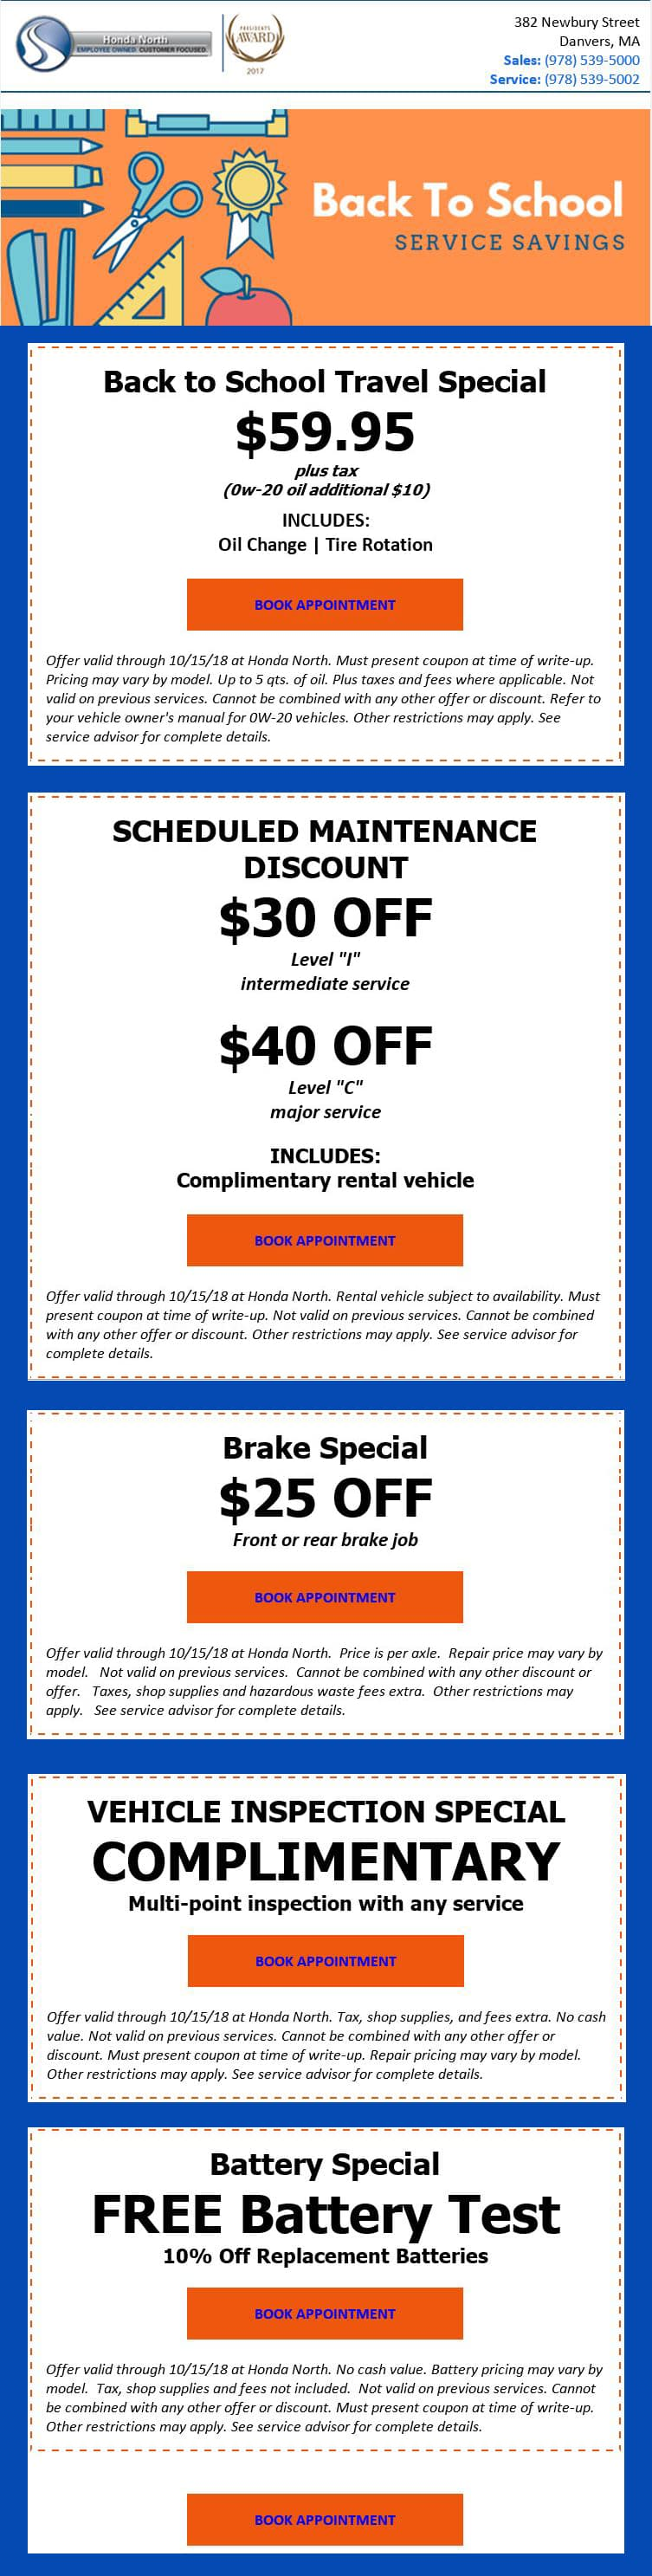 ... Thanks To Our Available Auto Repair Coupons And Other Deals. For  Top Quality Service And Reasonable Prices, Make Your Way To Honda North In  Danvers!